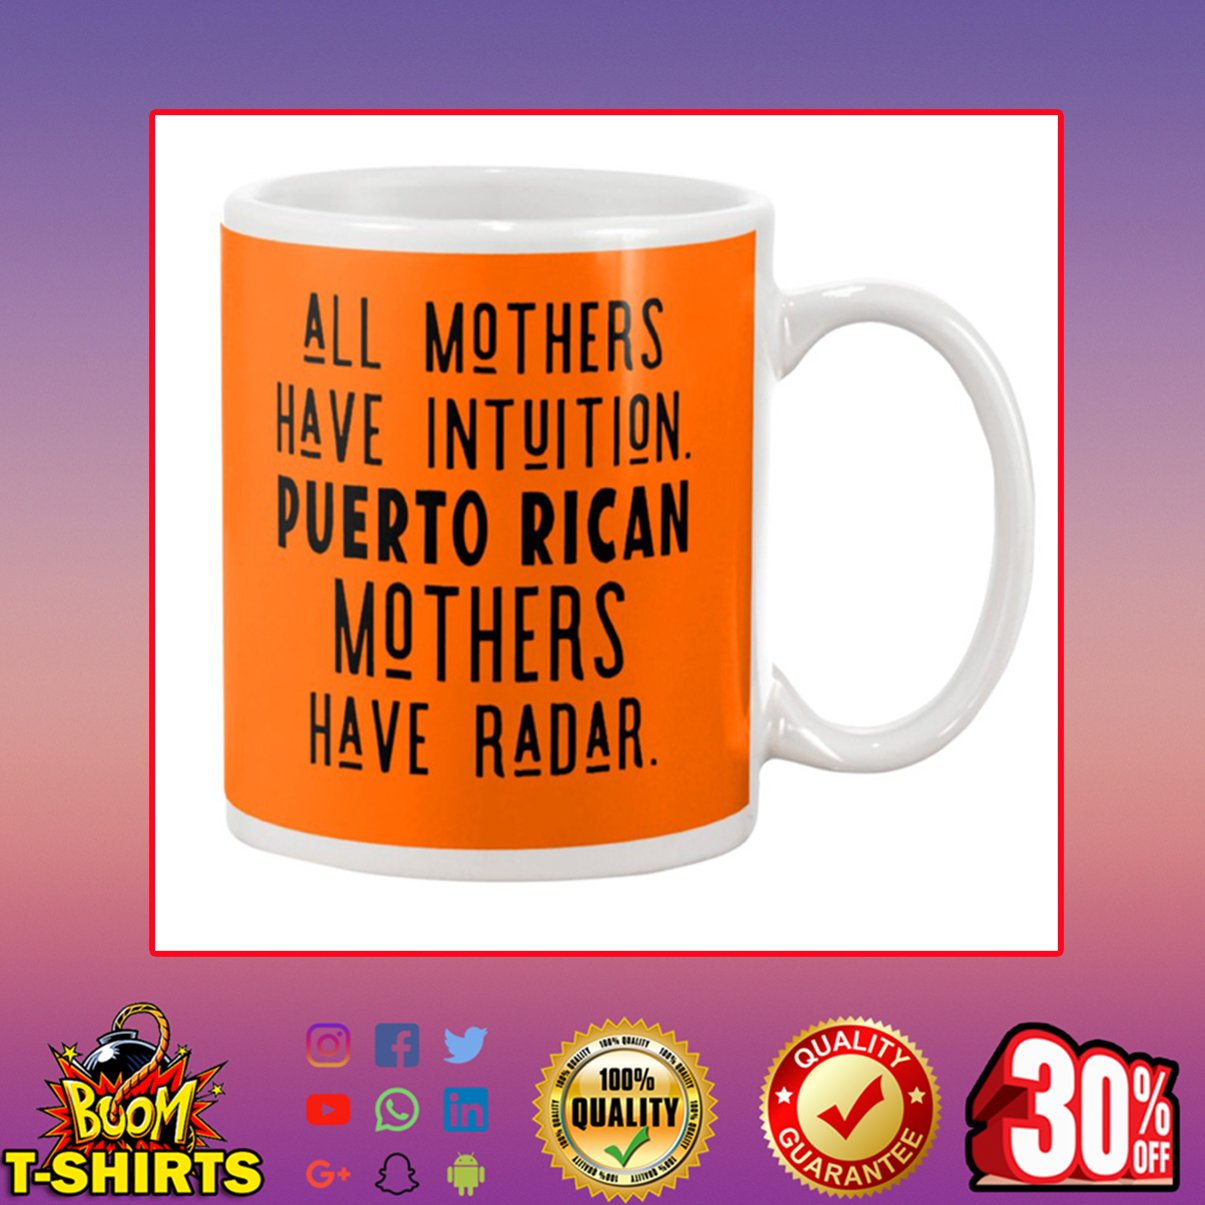 All Mothers Have Intuition Puerto Rican Mothers Have Radar Mug - orange